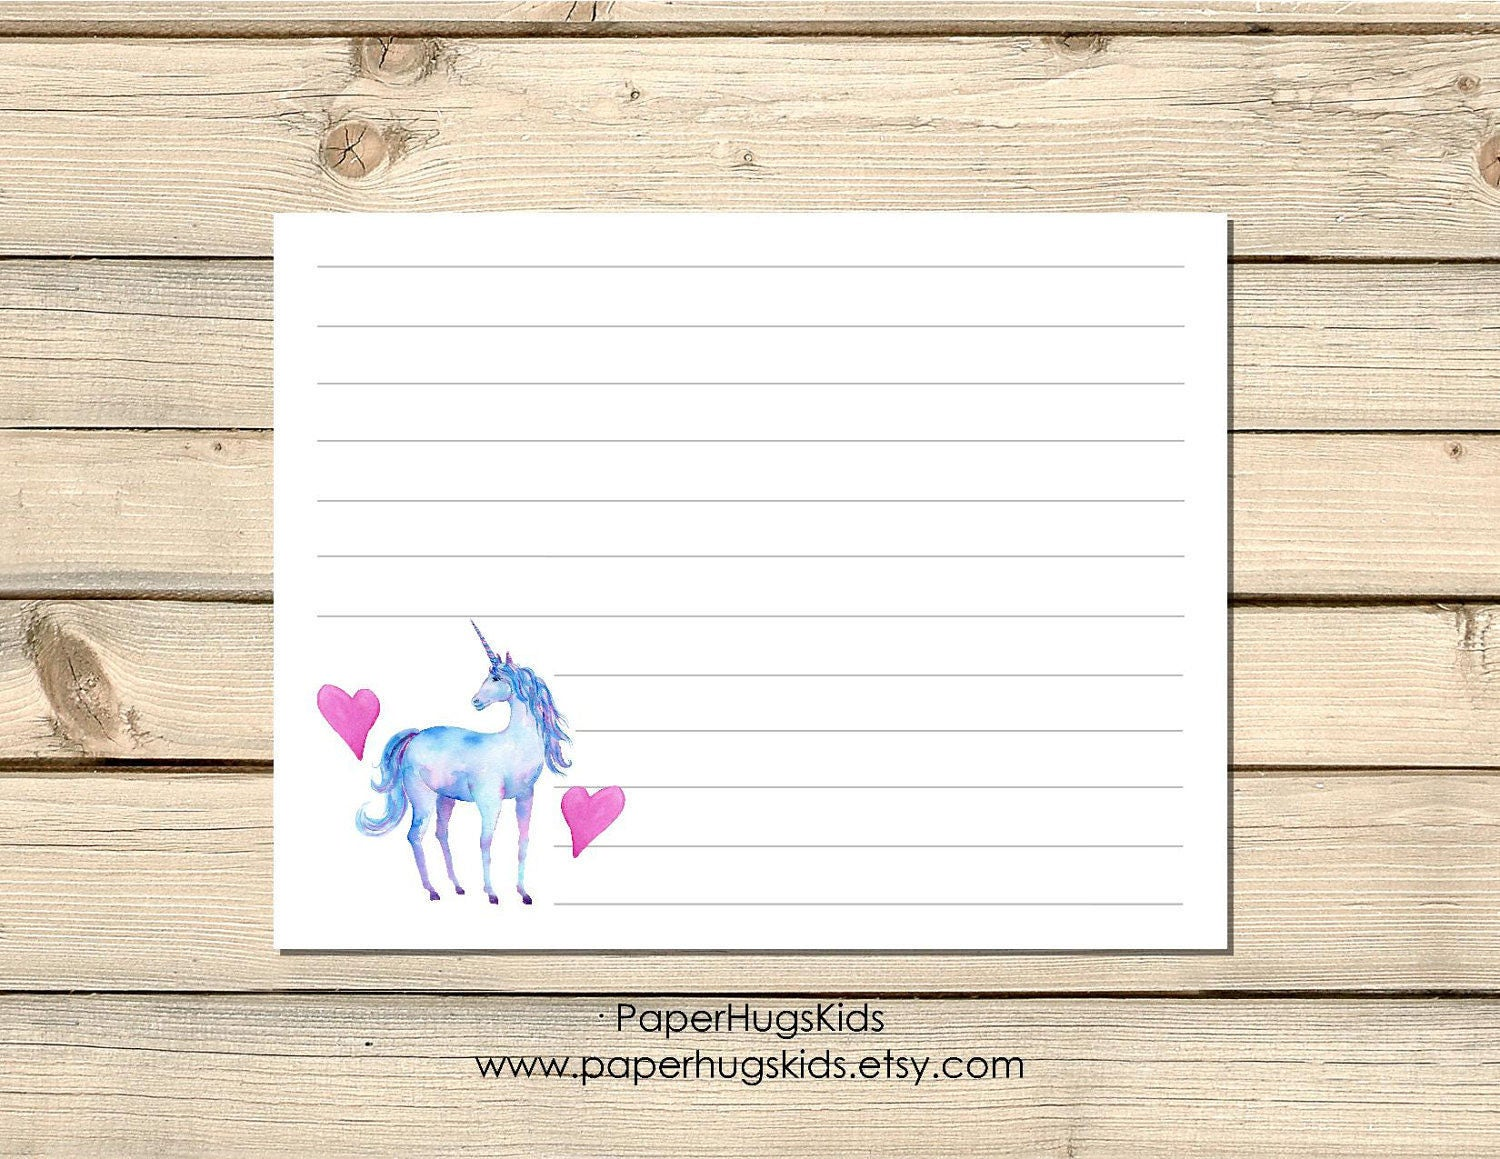 printable unicorn stationery unicorn note cards kids thank you cards personalized stationery - Printable Note Cards